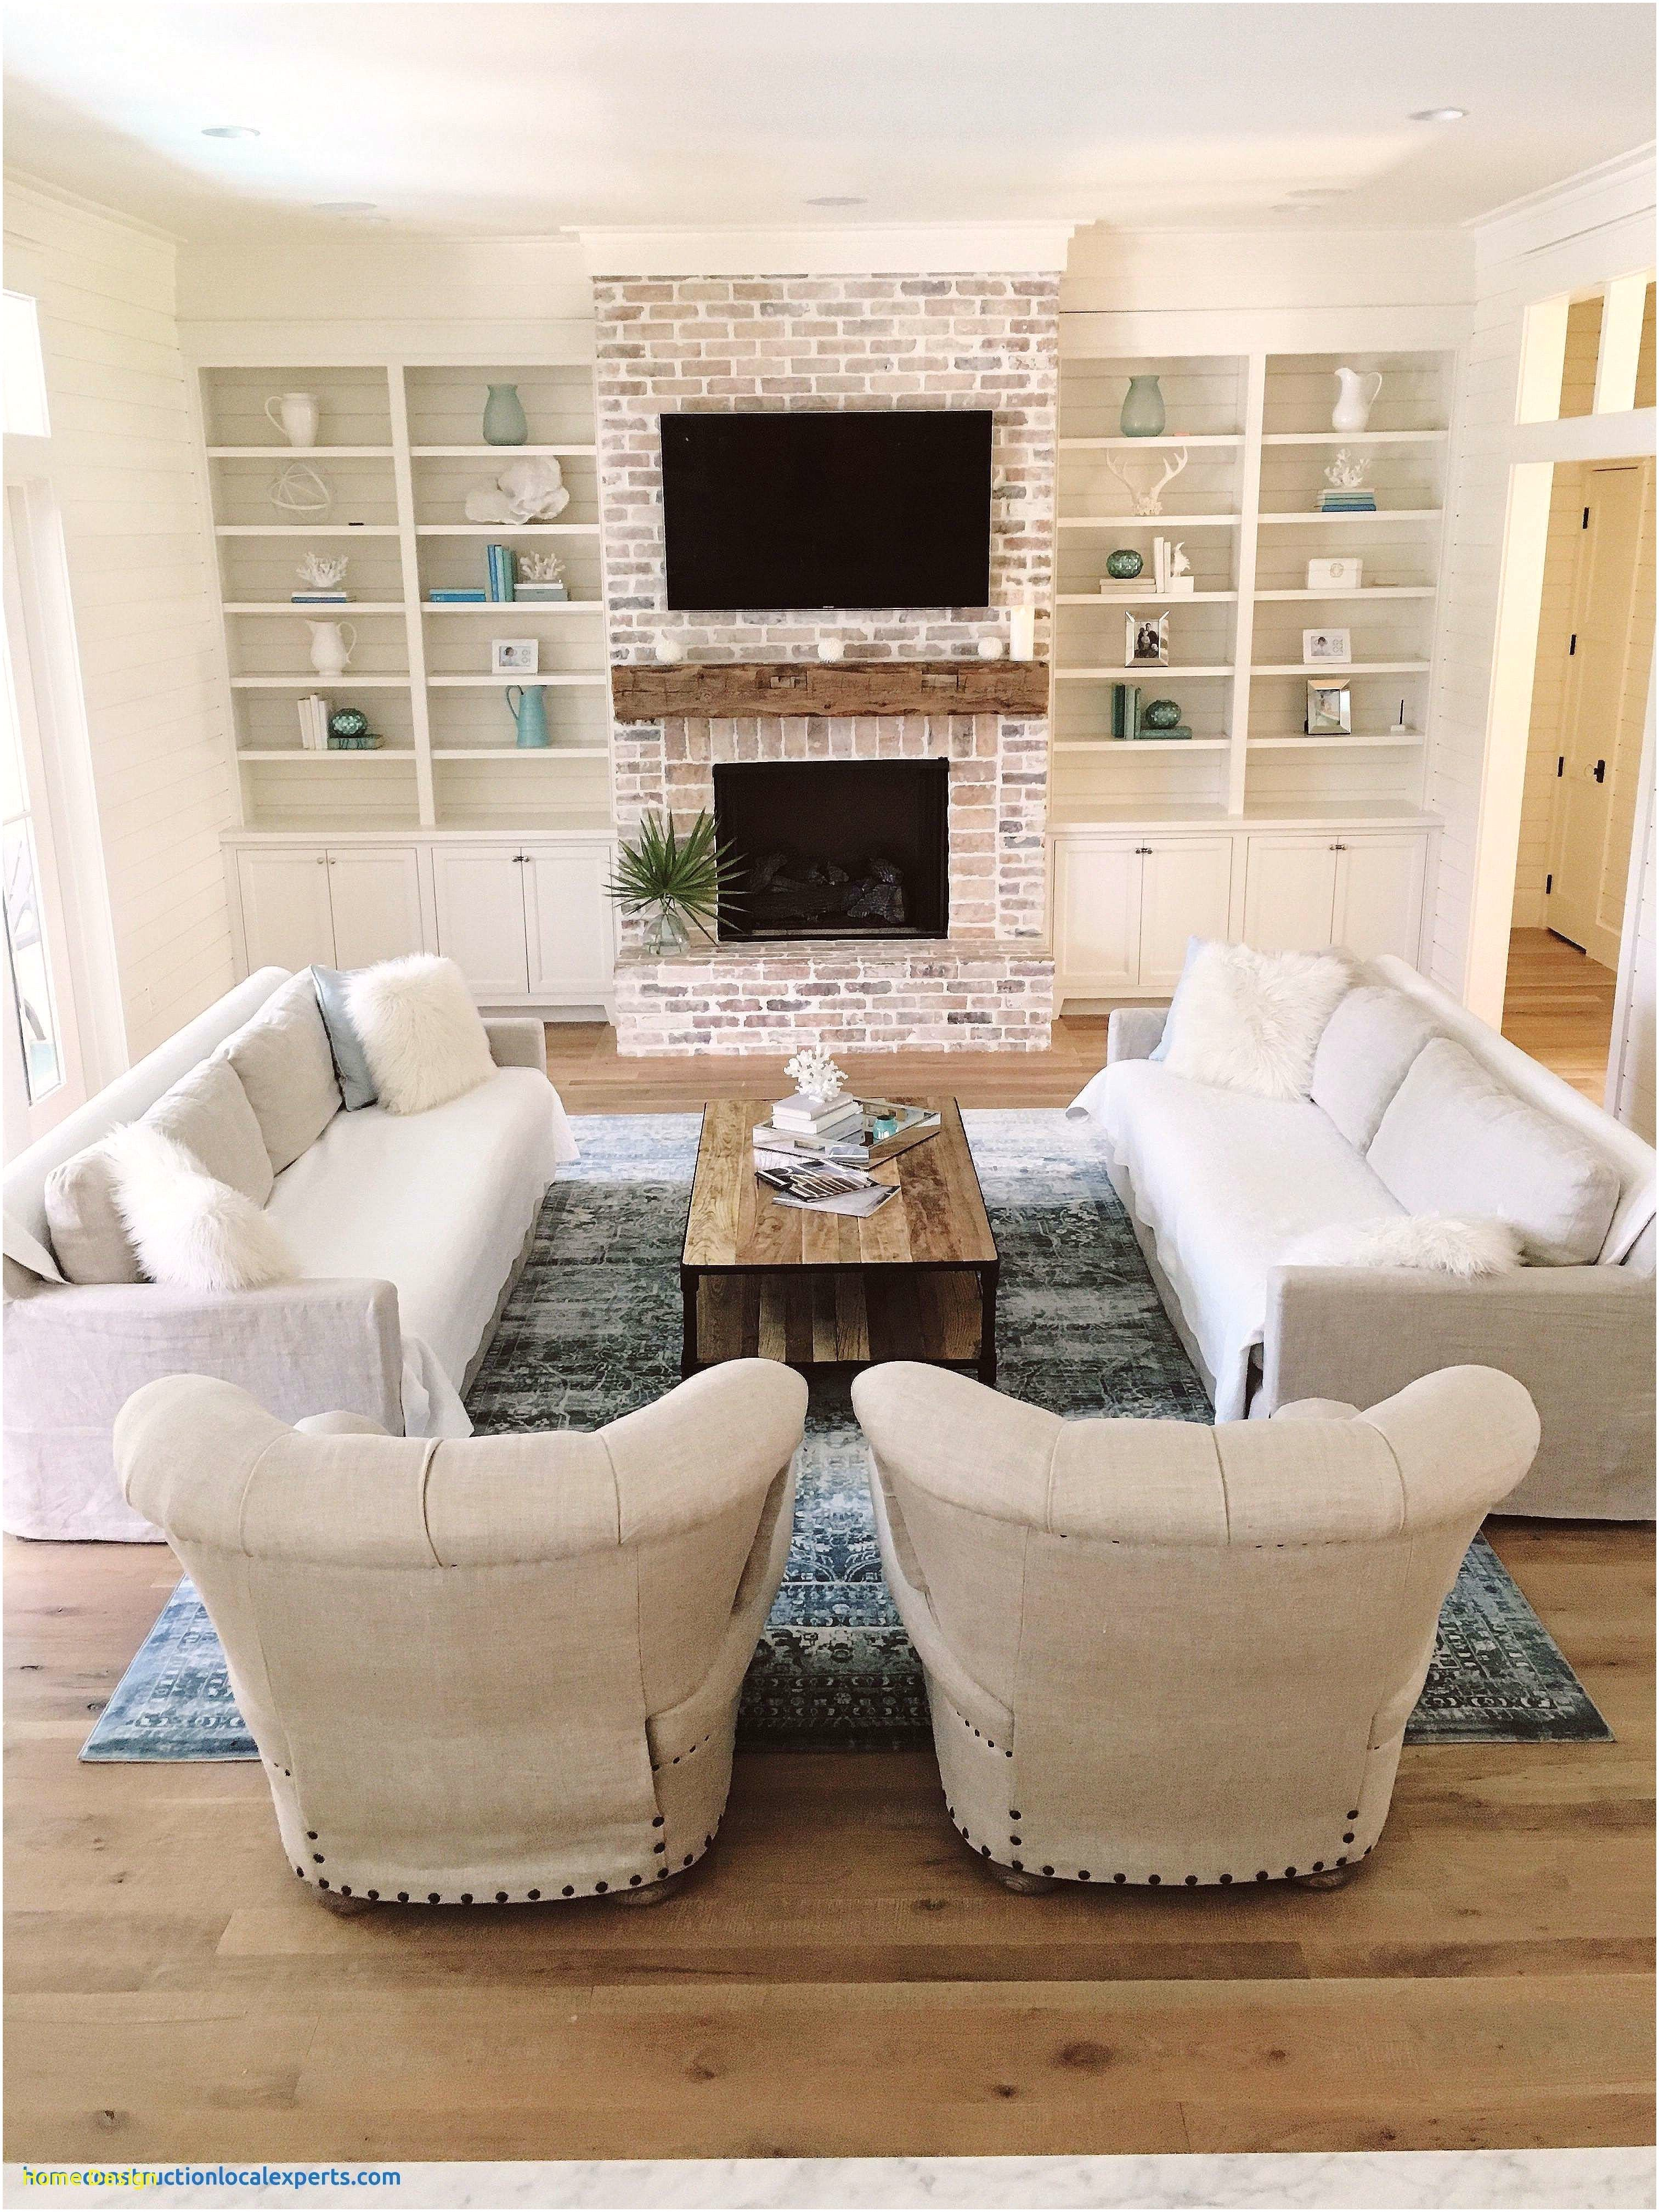 Zen Living Room Ideas On A Budget In 2020 Farmhouse Decor Living Room Farm House Living Room Modern Farmhouse Living Room